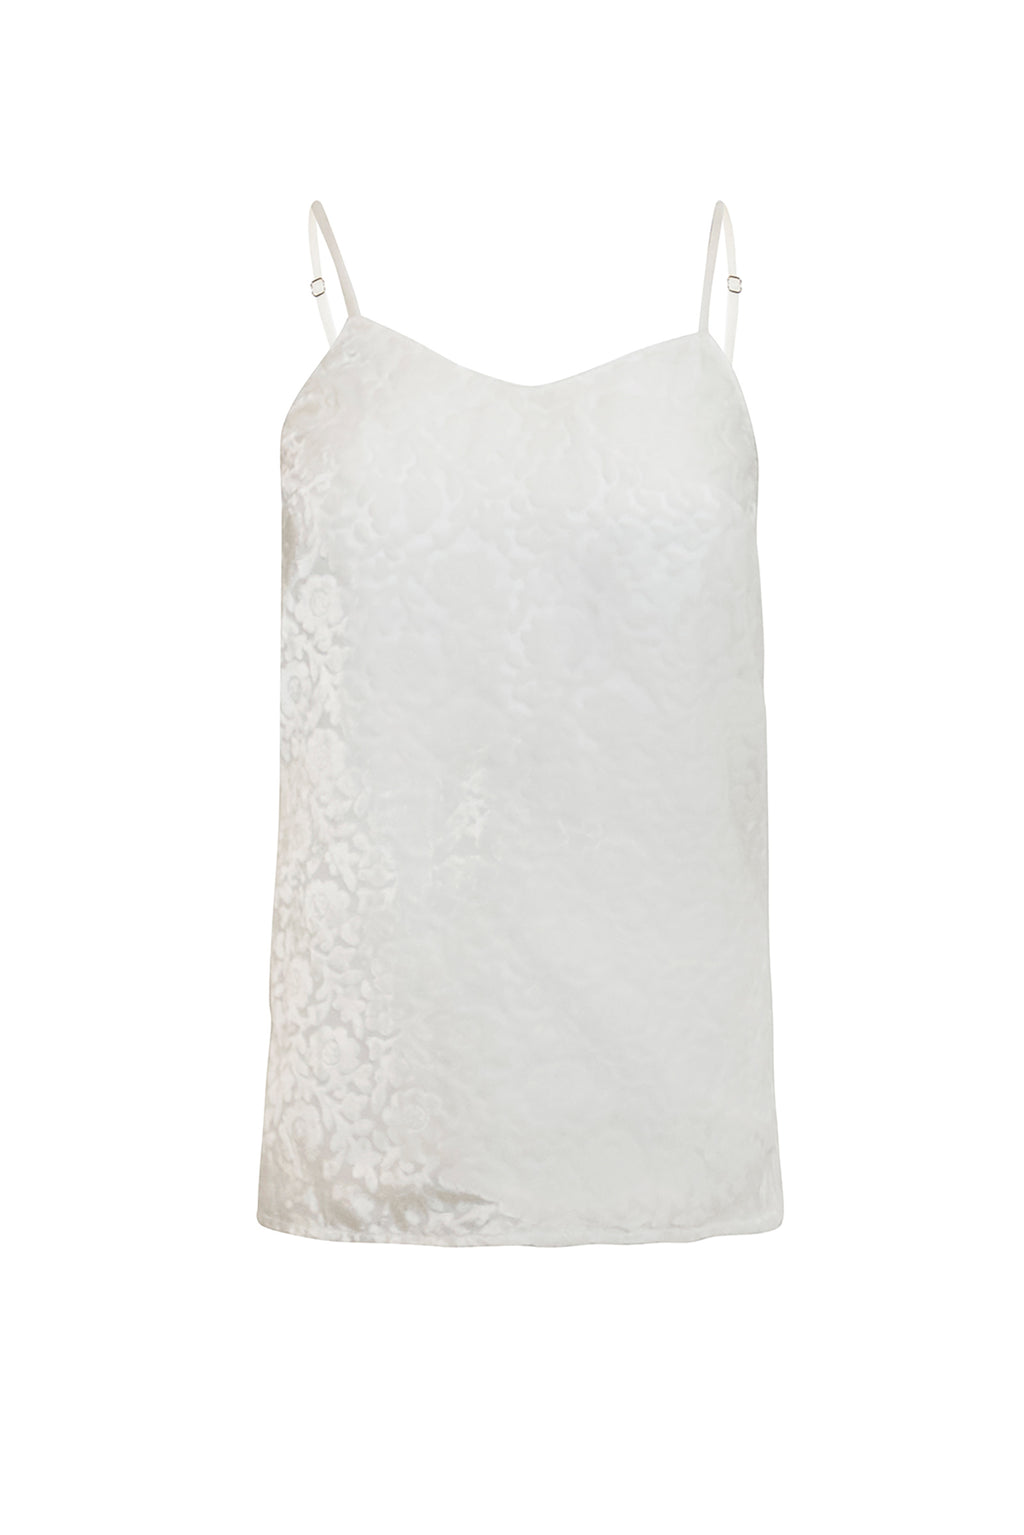 Ilona Rich White Burn-out Cami Top